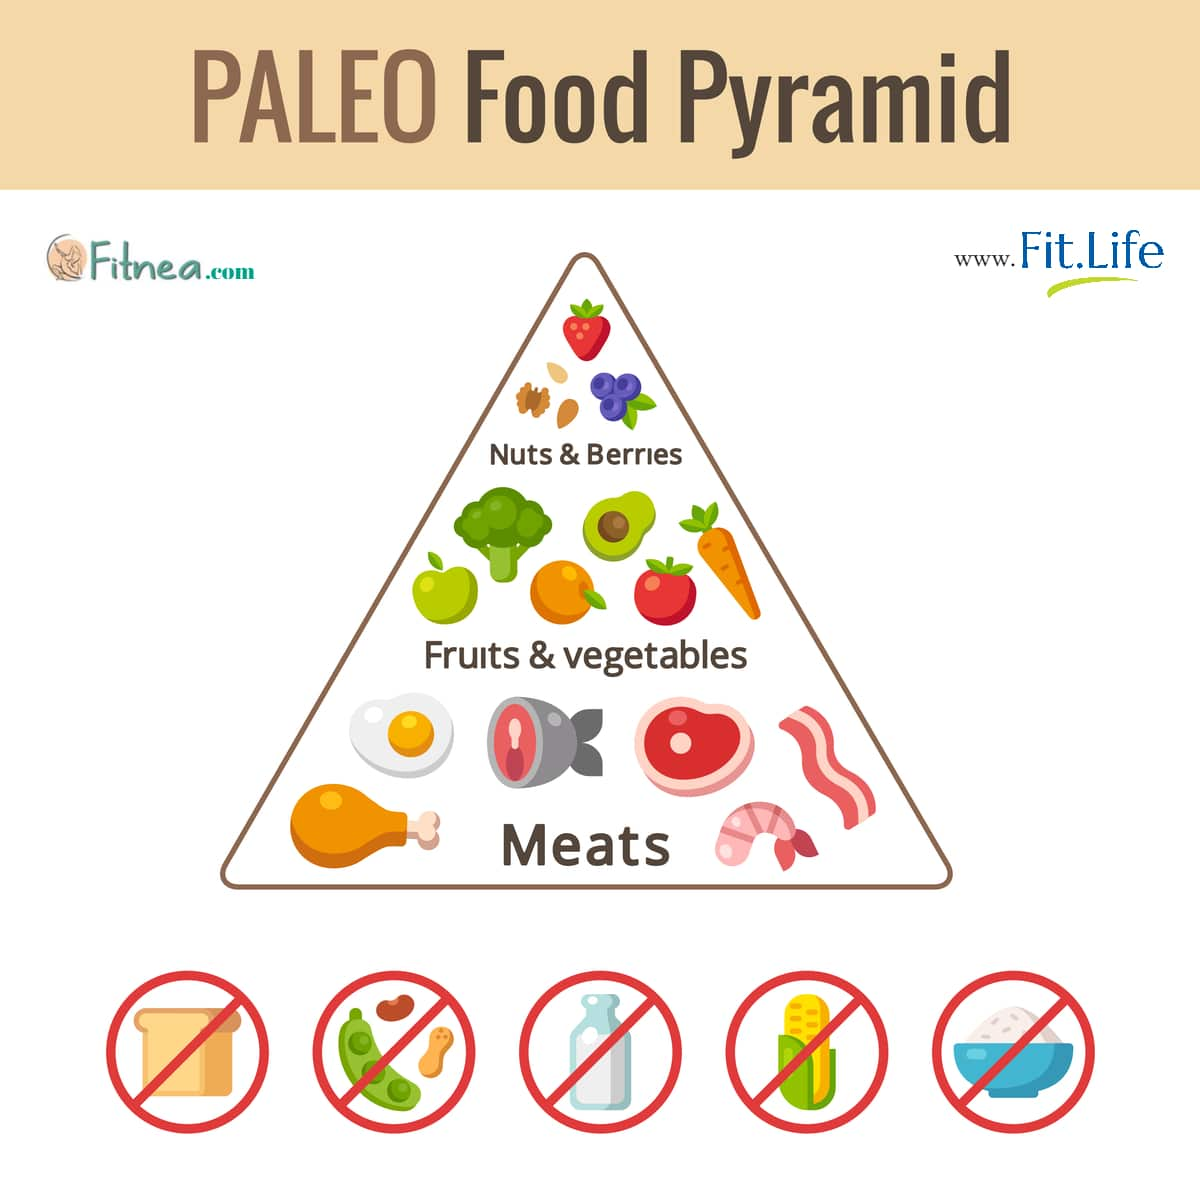 new food pyramid diagram 350 oil flow paleo what foods does it contain fitnea